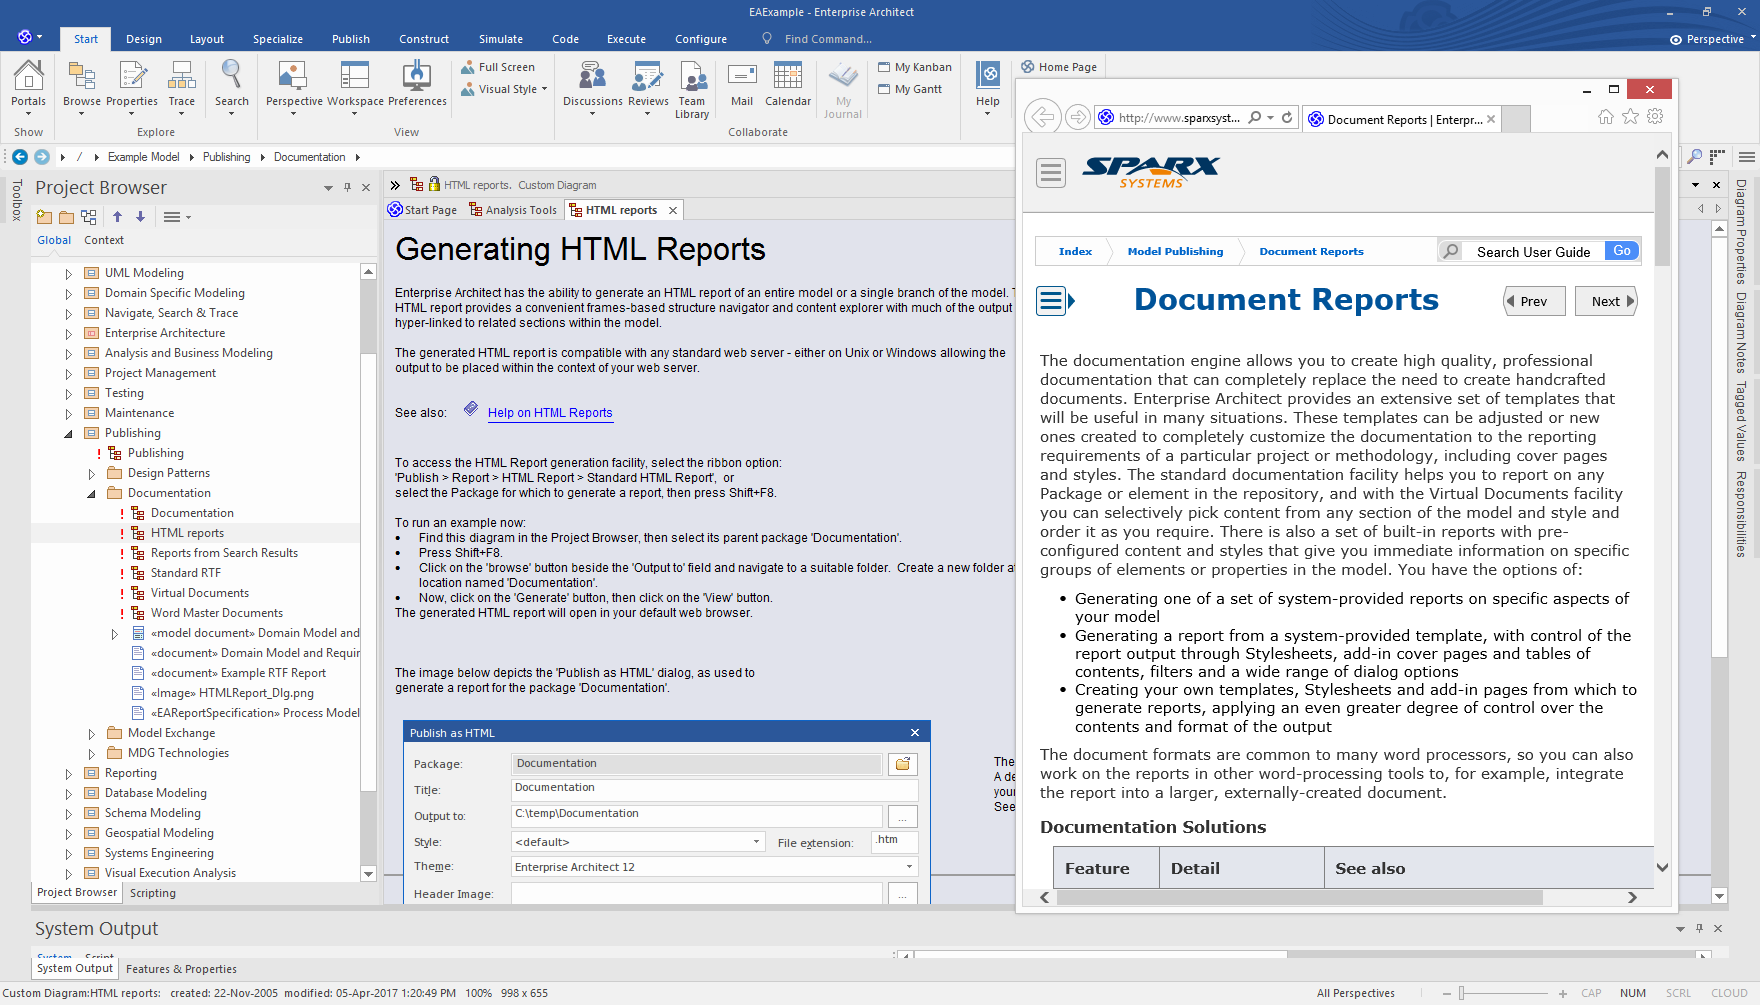 Enterprise Architect Professional Edition: Publish Reports